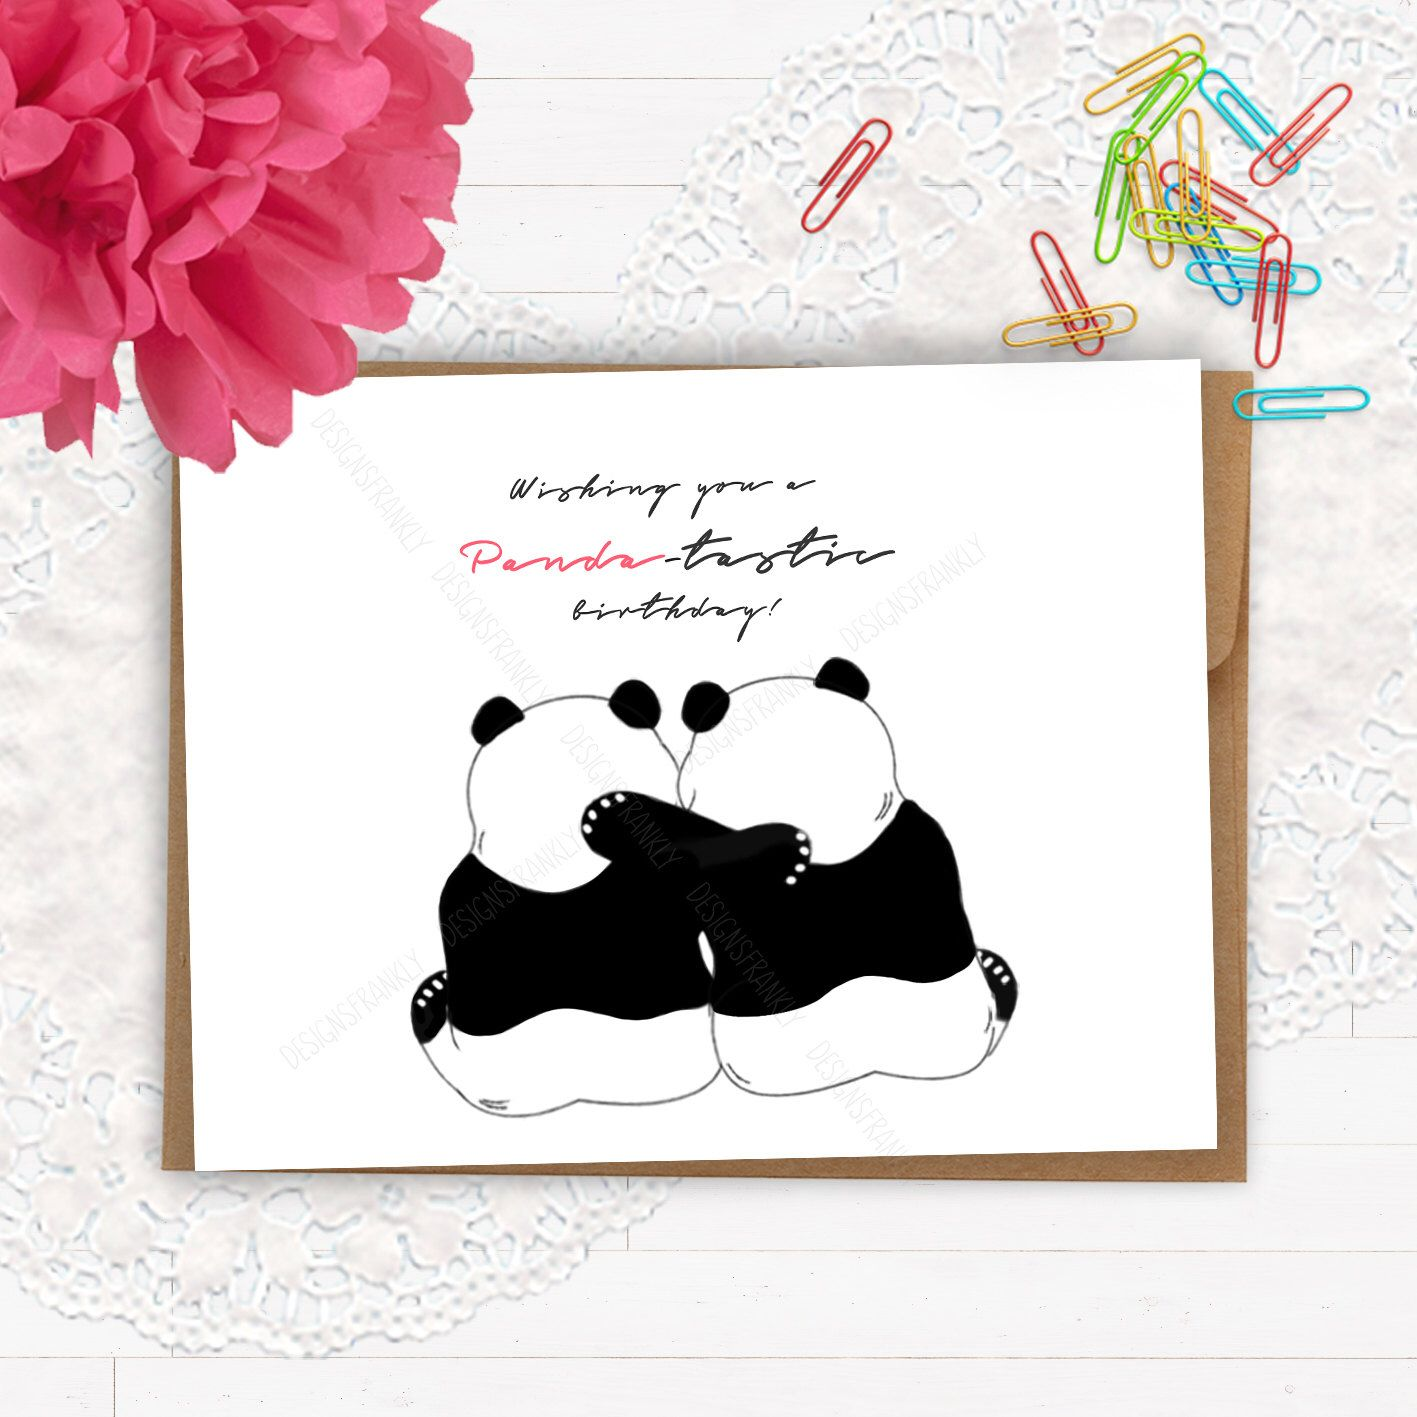 Funny unique birthday card panda pun card friend bestie panda unique funny unique birthday card panda pun card friend bestie panda unique greeting card pun punny birthday greeting card funny fun birthday card panda birthday bookmarktalkfo Image collections